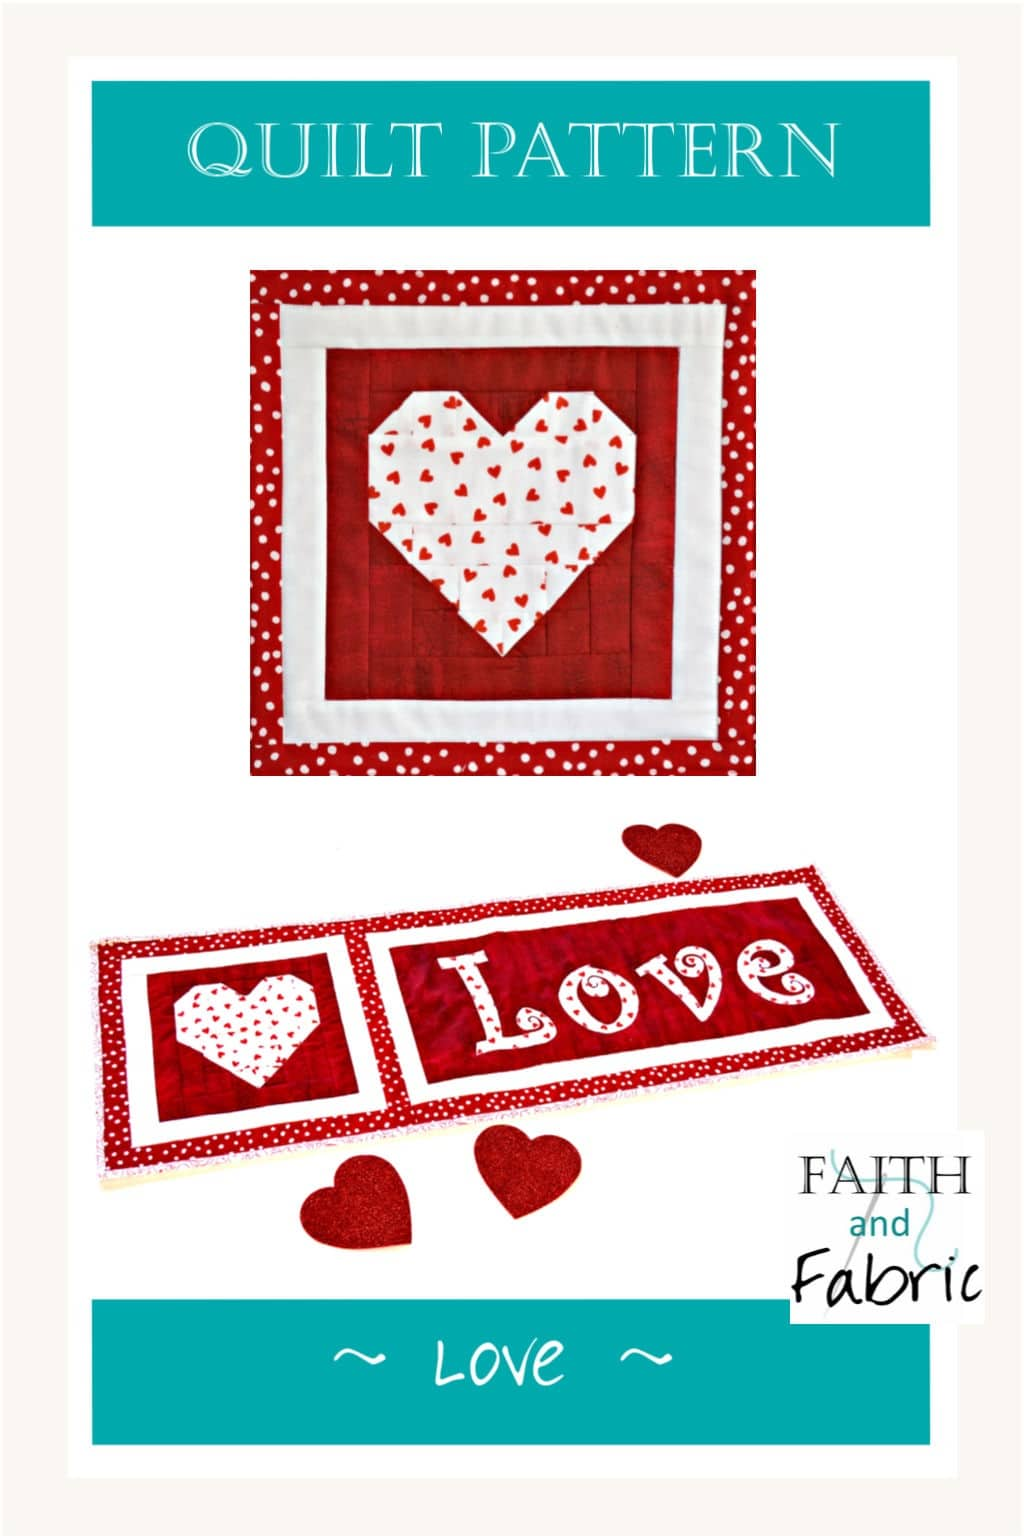 Celebrate St. Valentine's Day with this beginner friendly quilt pattern! Includes basic heart piecing and applique work. Can be made into a runner or banner! Created by Faith and Fabric.